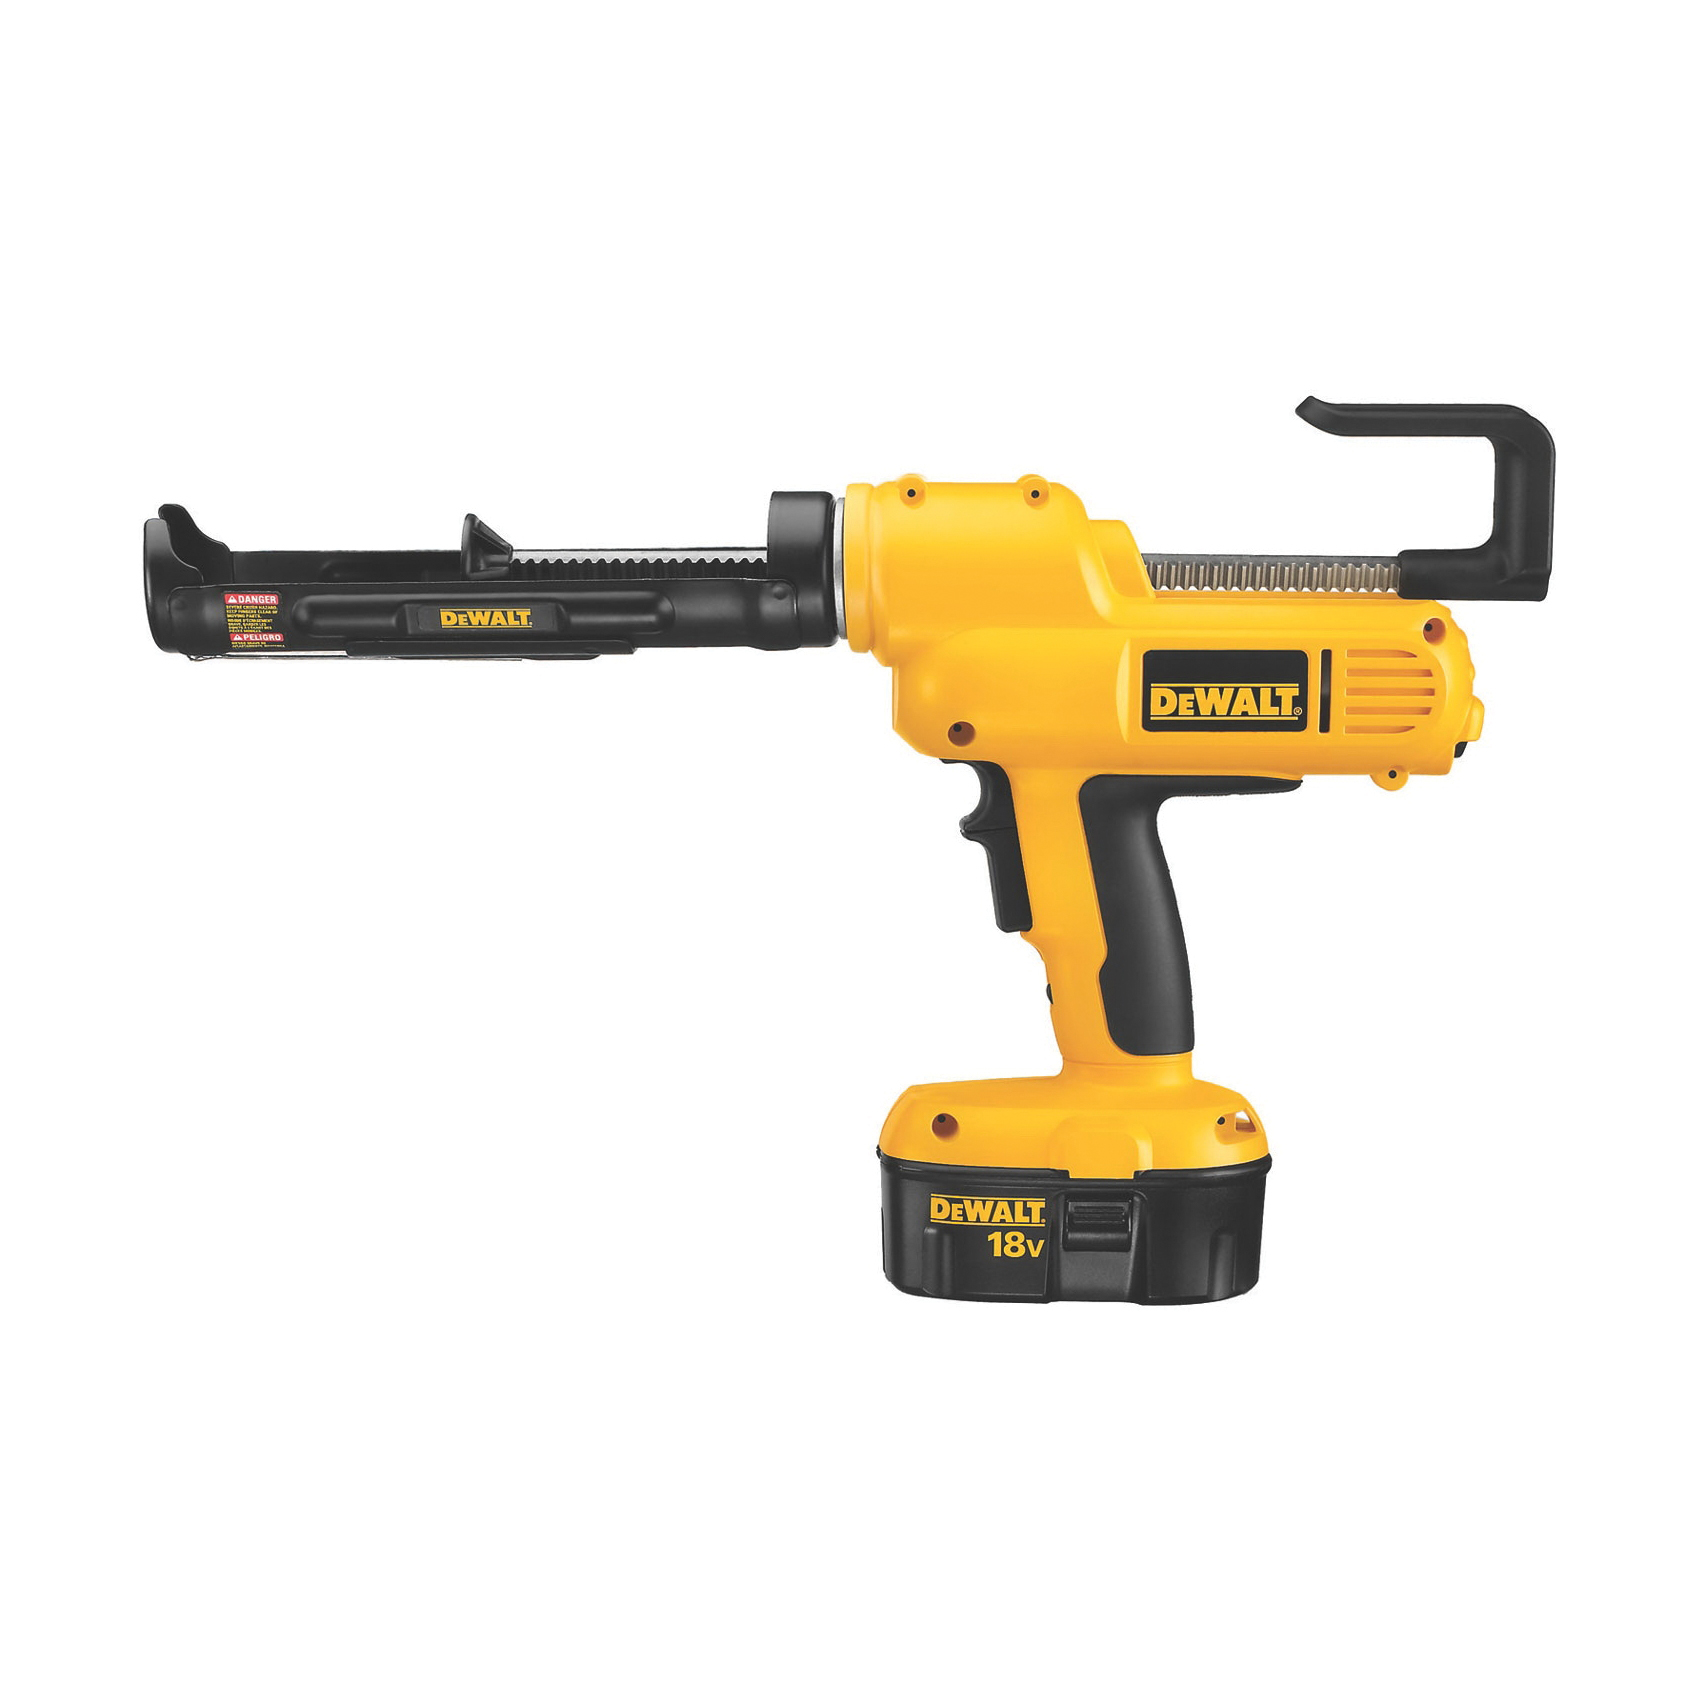 DeWALT® DC545B Cordless Adhesive Gun, 10 oz Capacity, 650 lb, 18 VDC, Ni-Cd Battery, Tool Only